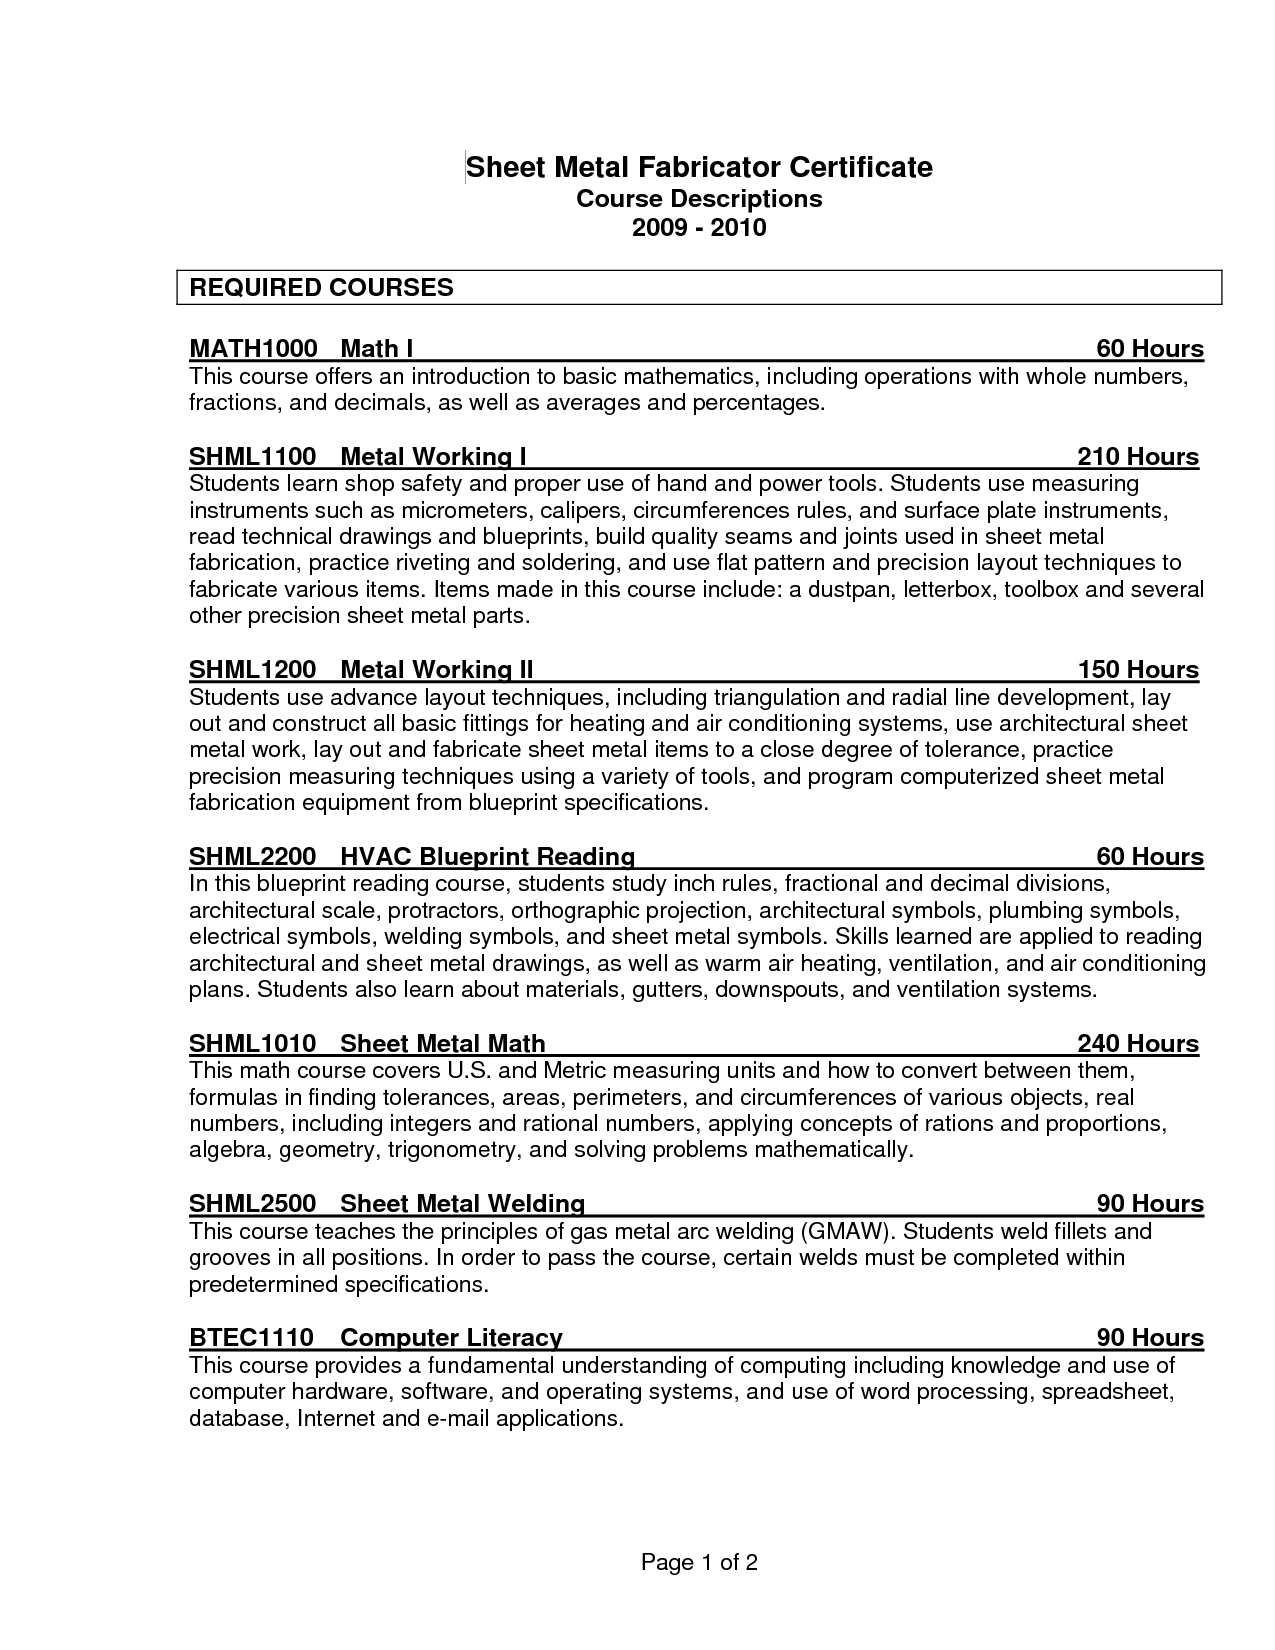 sample resume without picture